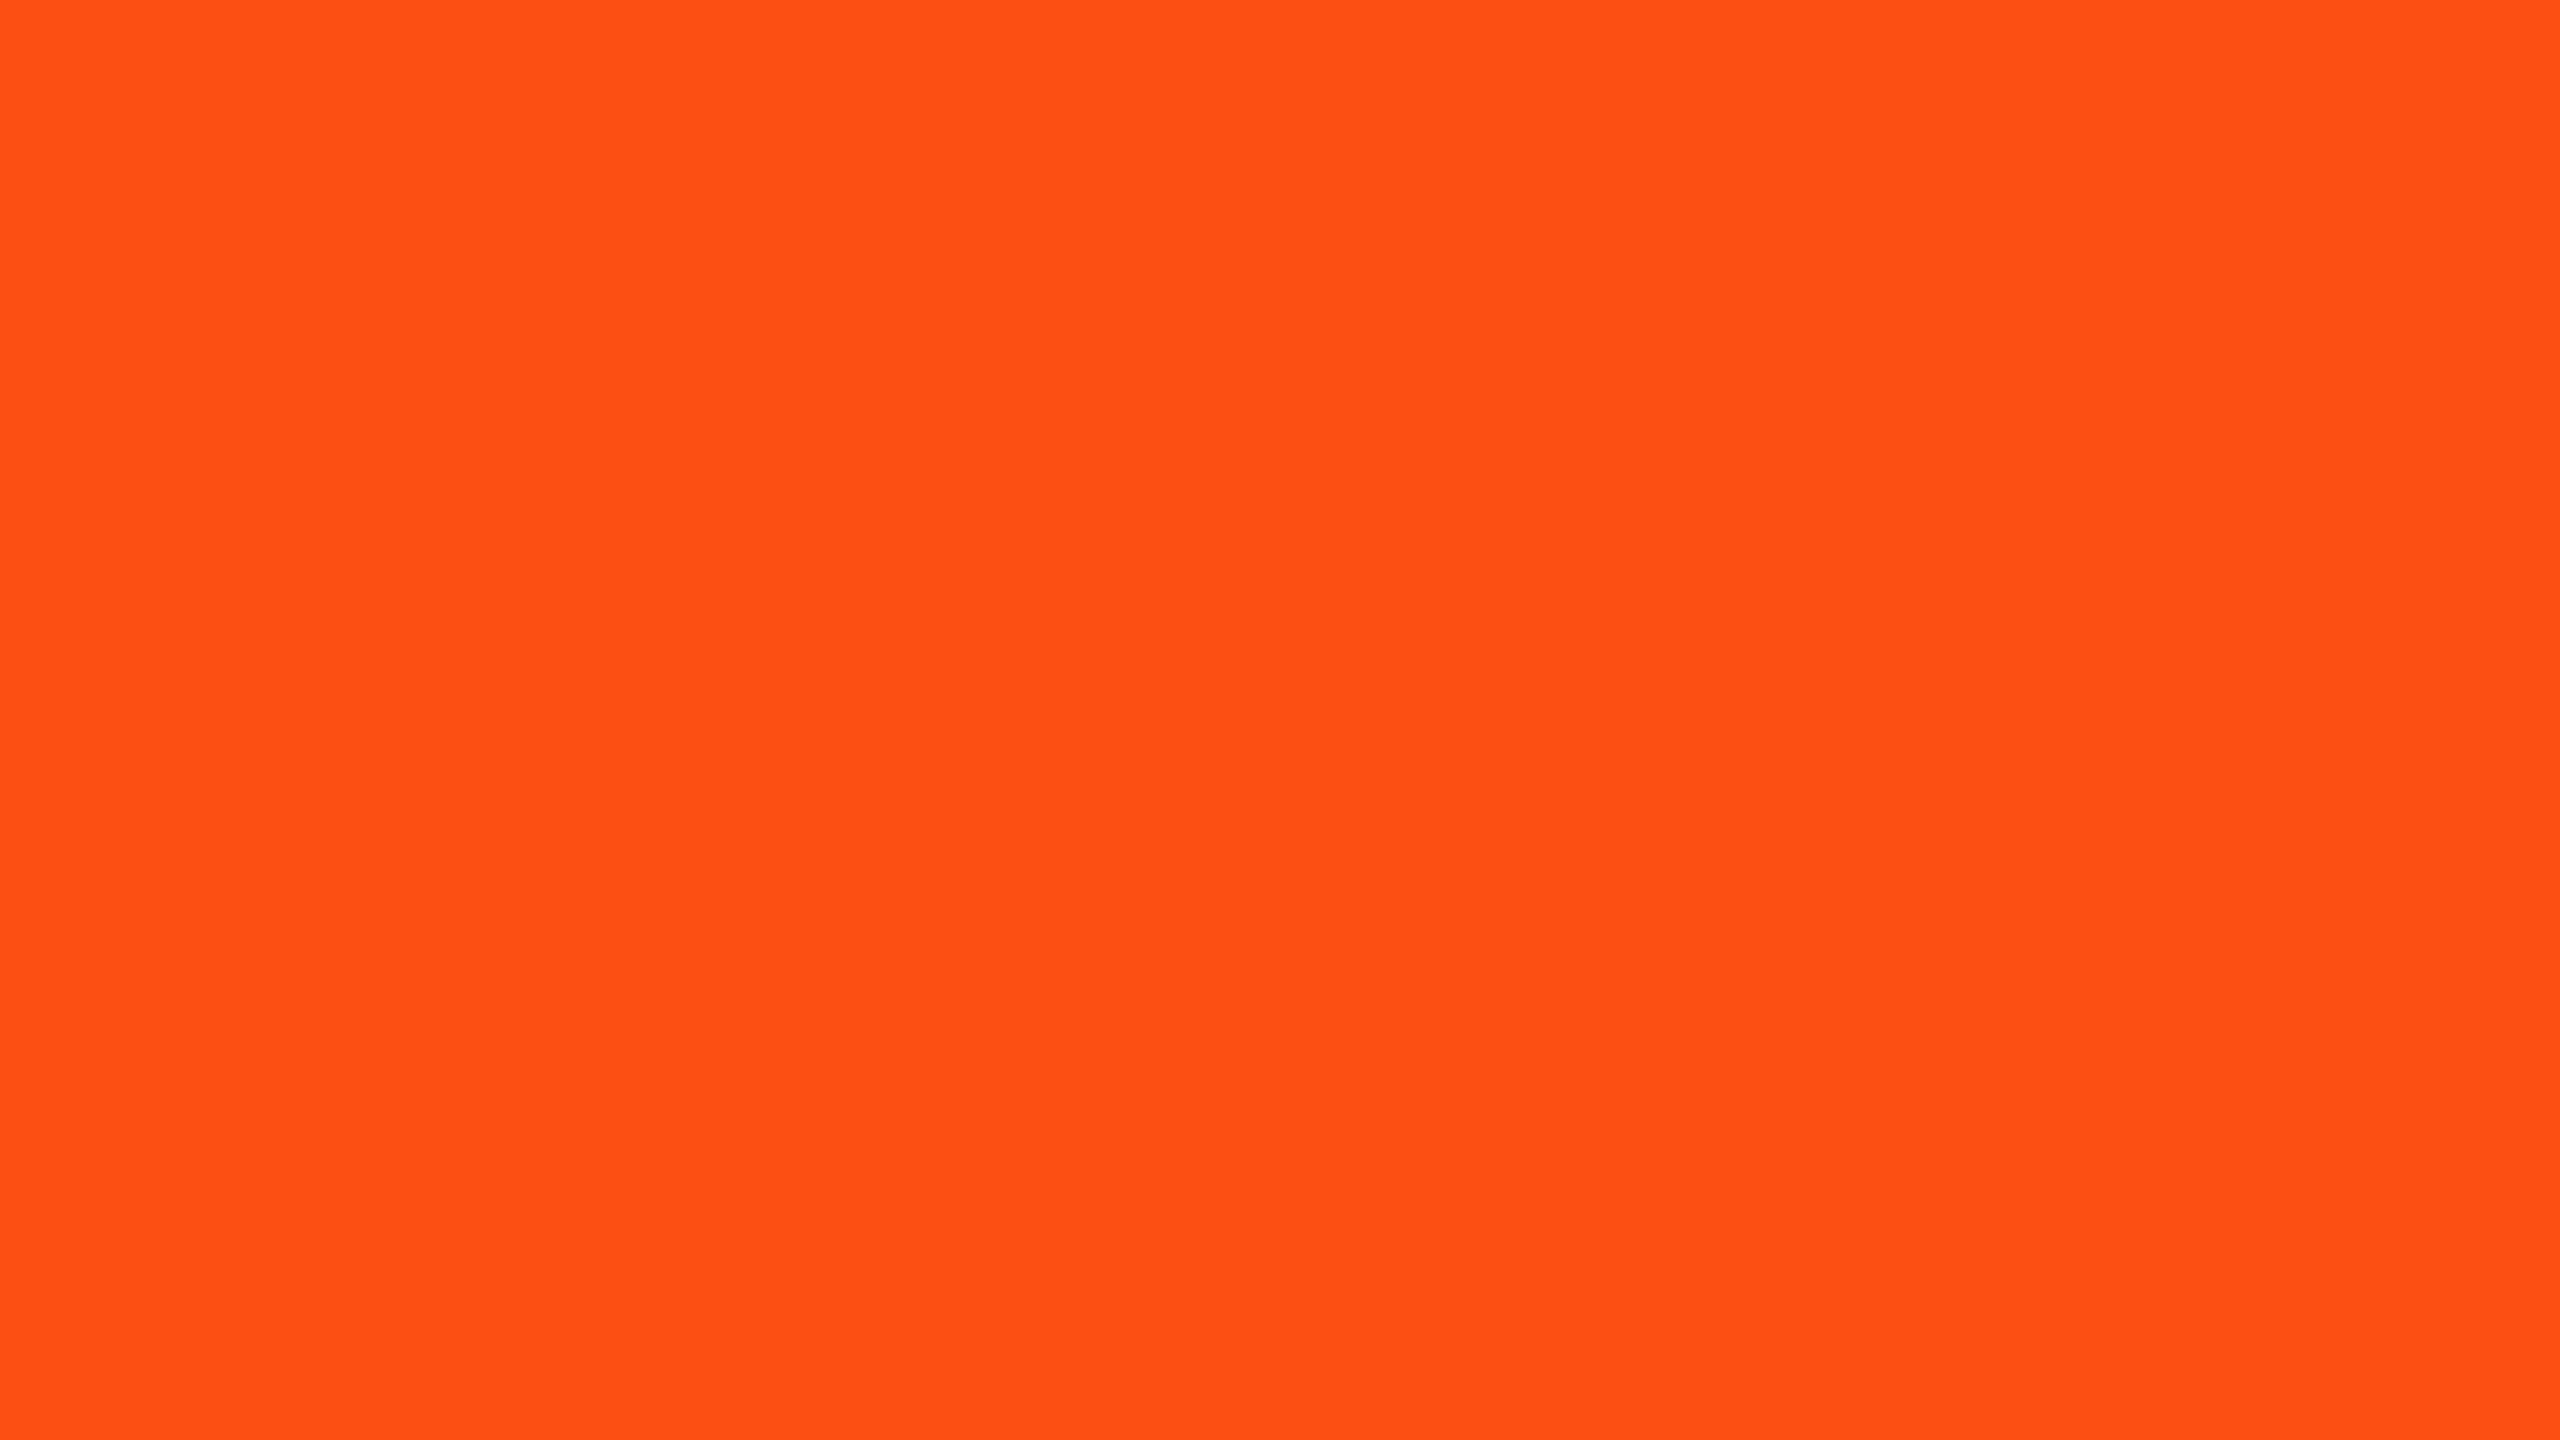 Solid Orange Wallpaper - WallpaperSafari